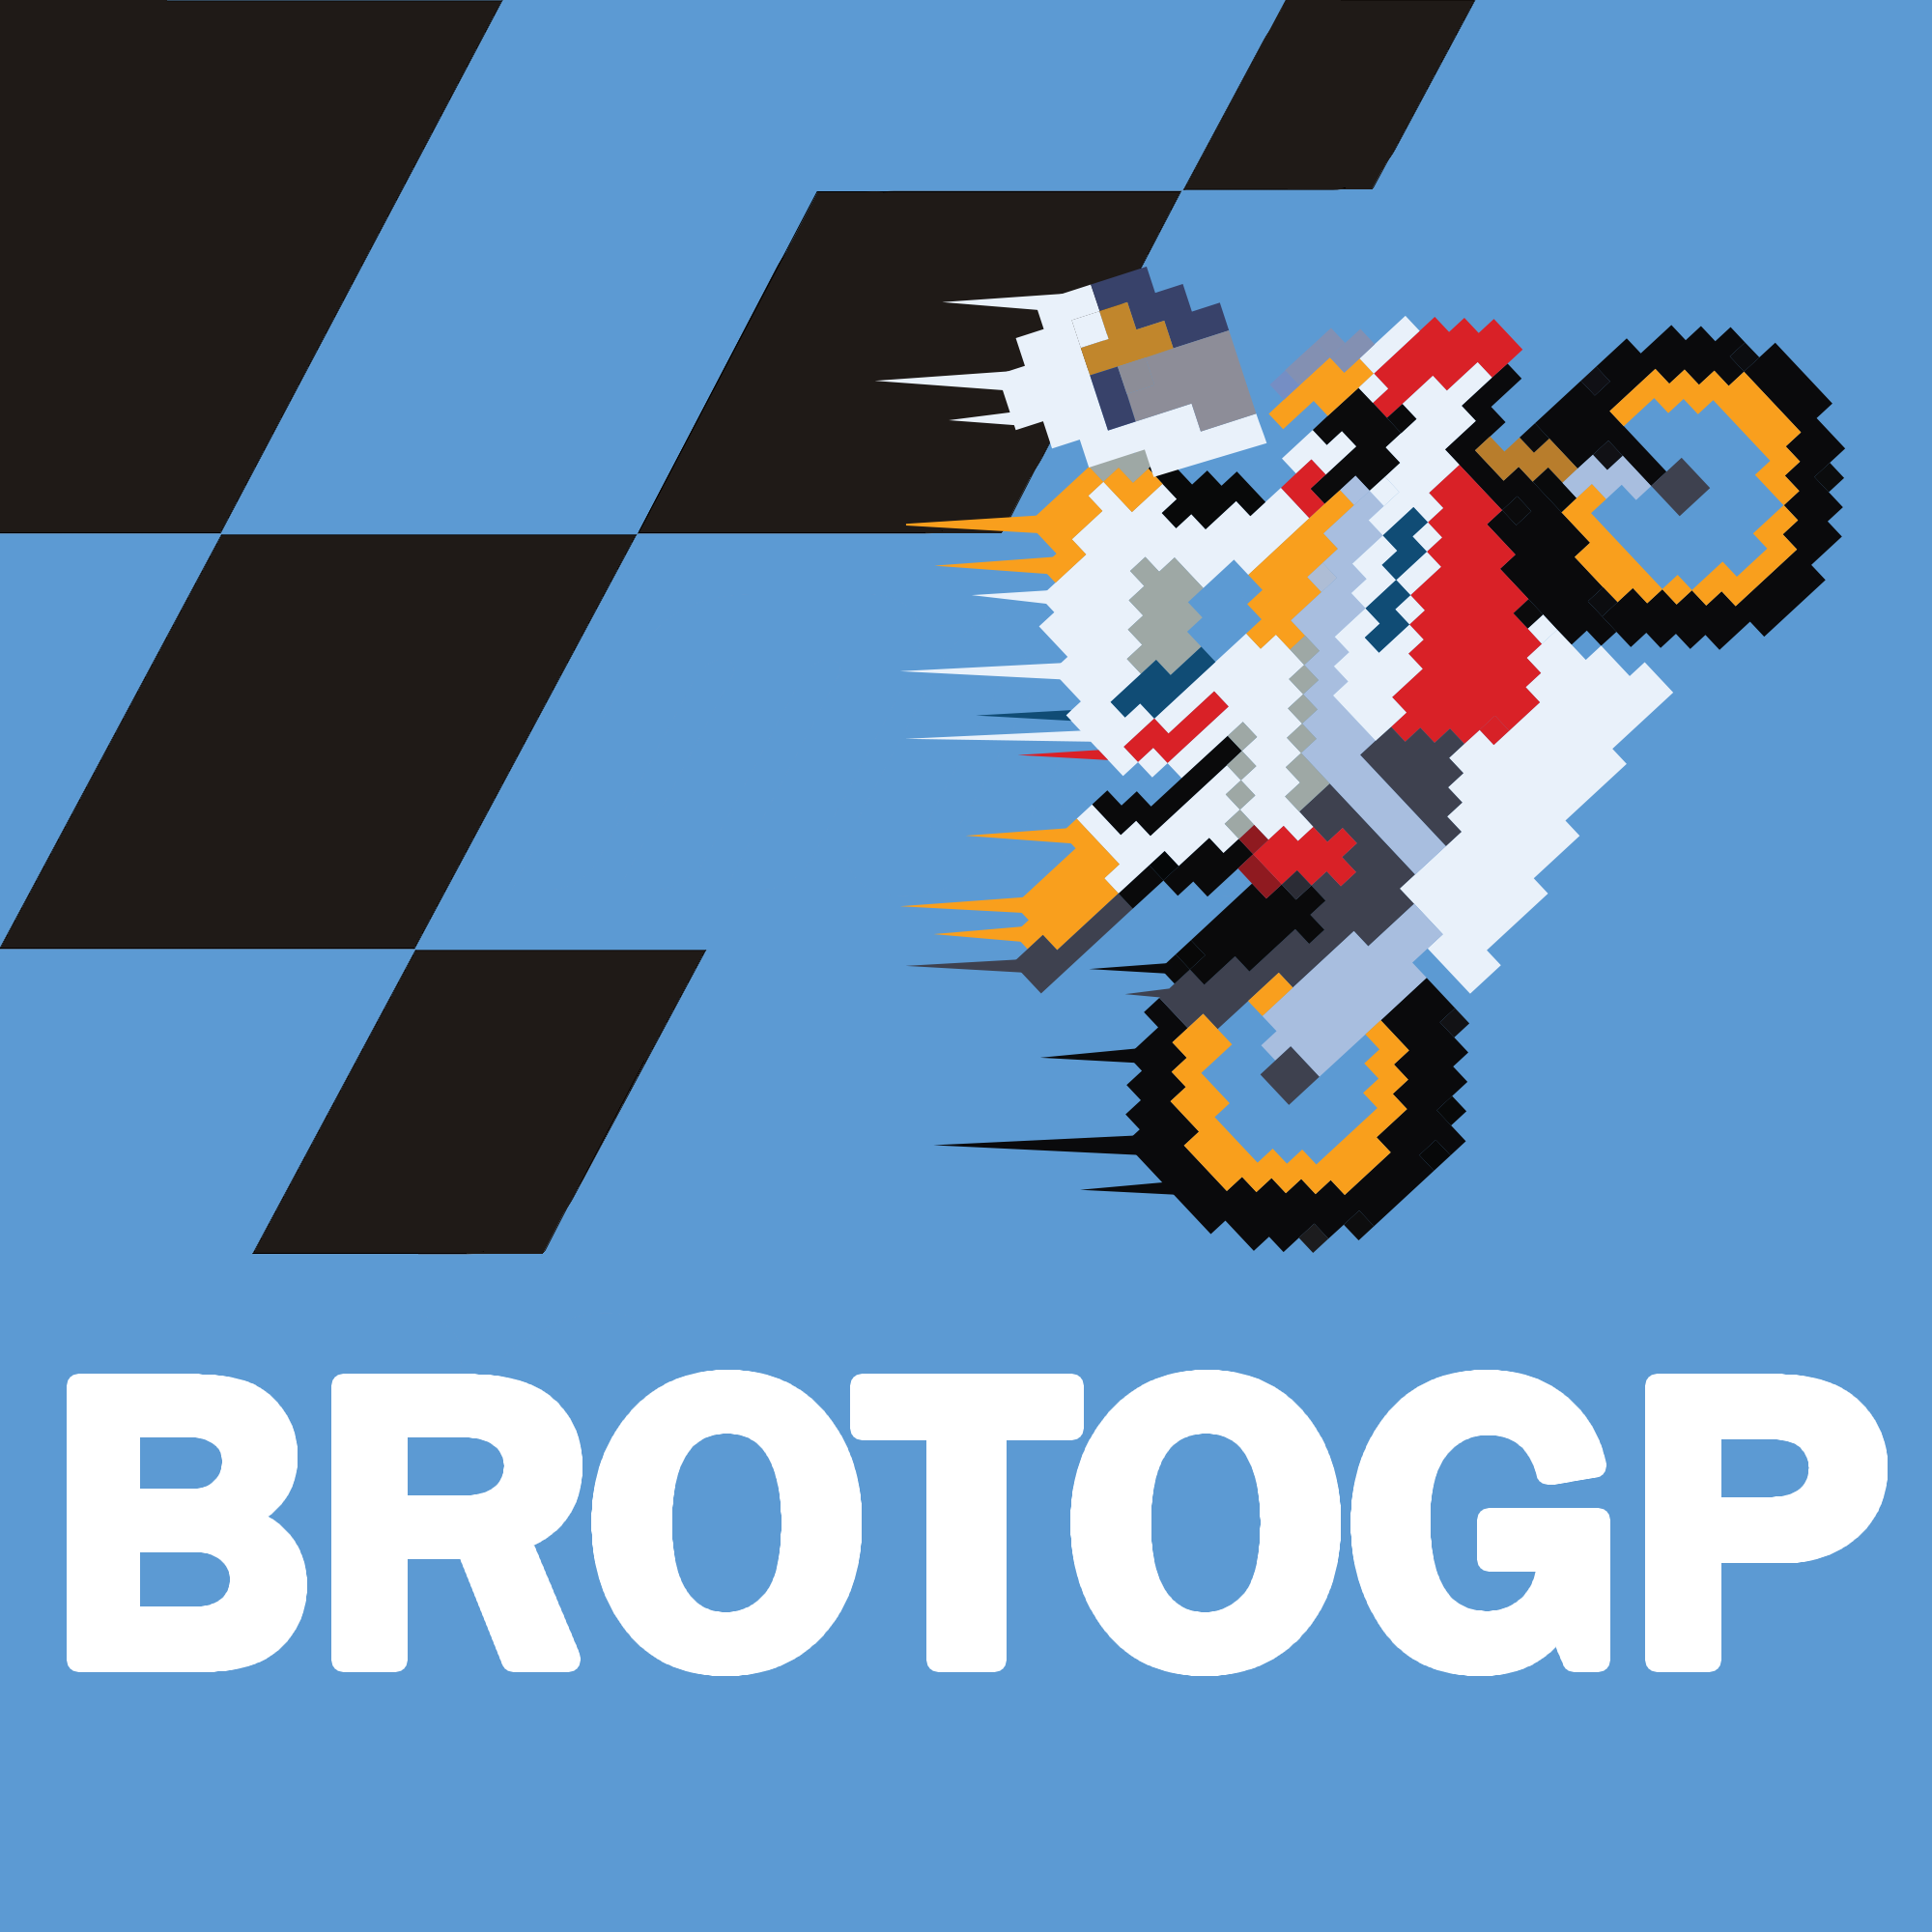 BrotoGP - Motorcycle Road Racing